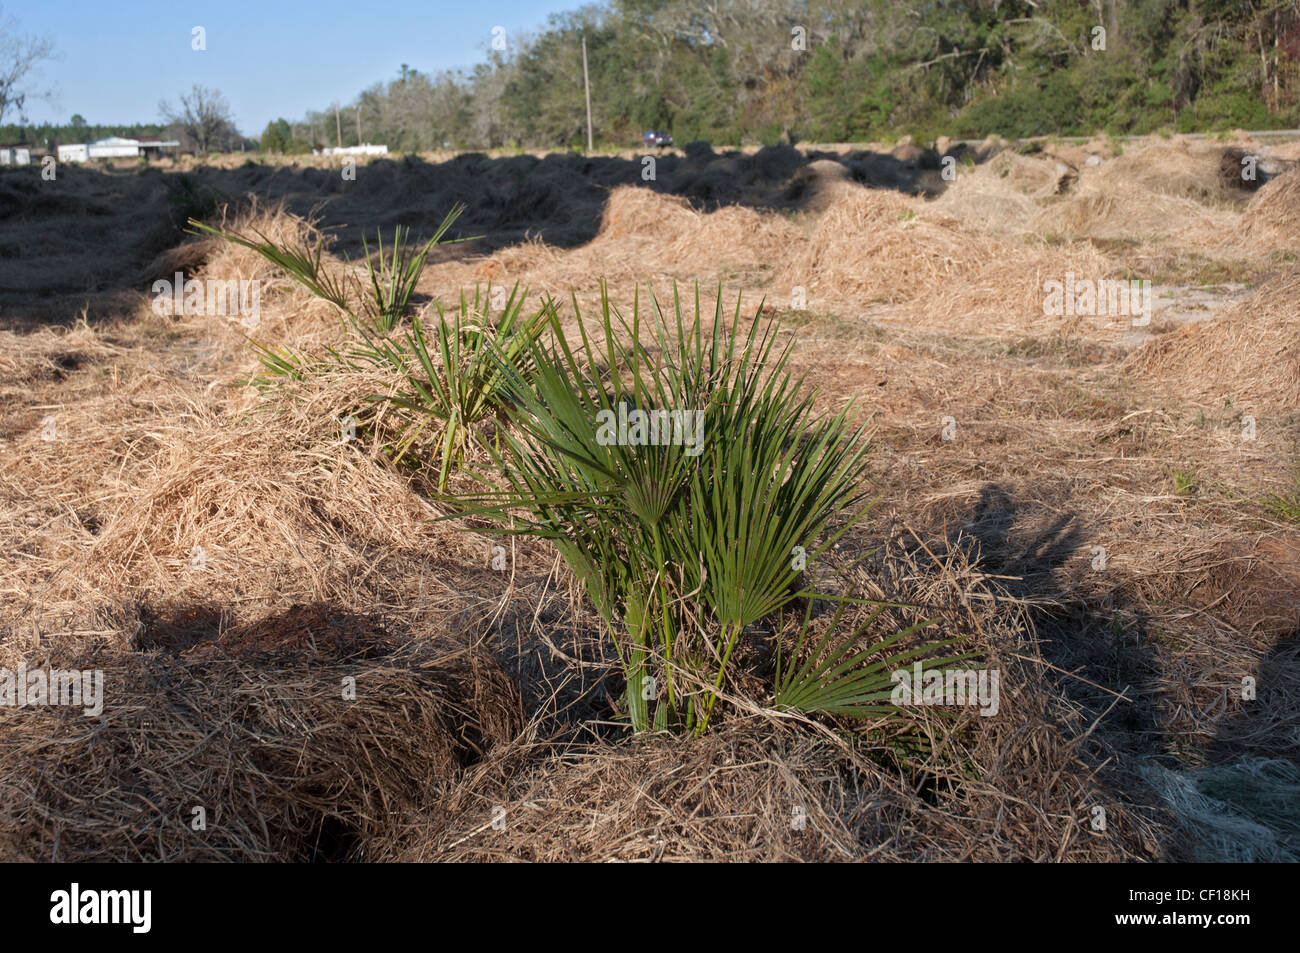 nursery protecting small palm trees from cold weather with pine straw mulch, North Florida Stock Photo